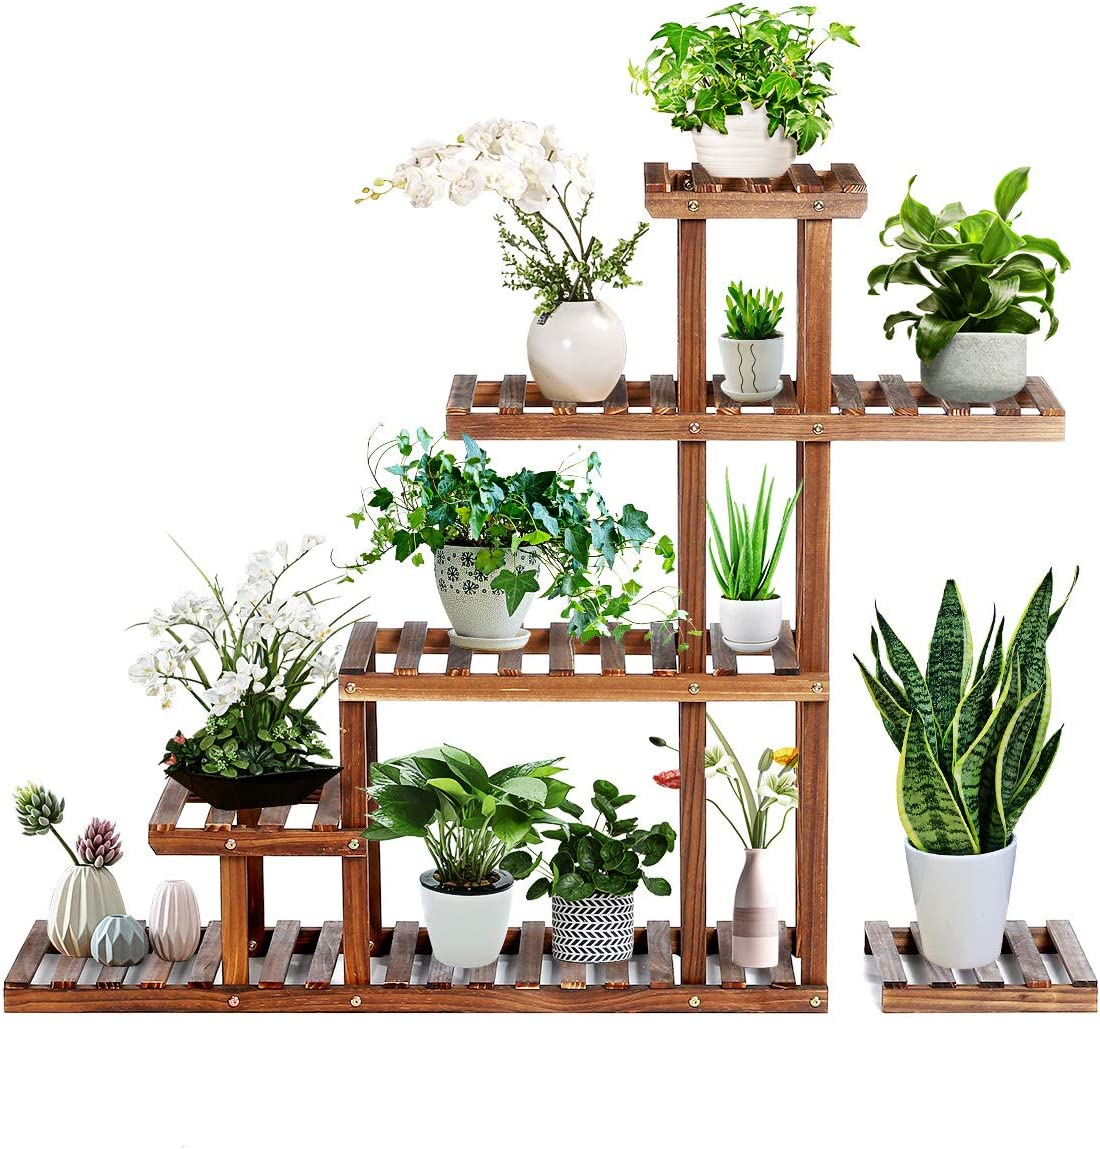 TOOCA Wood Plant Stand Indoor, 5 Tier Stylish Outdoor Plant Flower Stand, Multiple Tier Plant Display Rack Holder, Steady Vertical Carbonized Shelves for Patio Livingroom Balcony Garden Yard